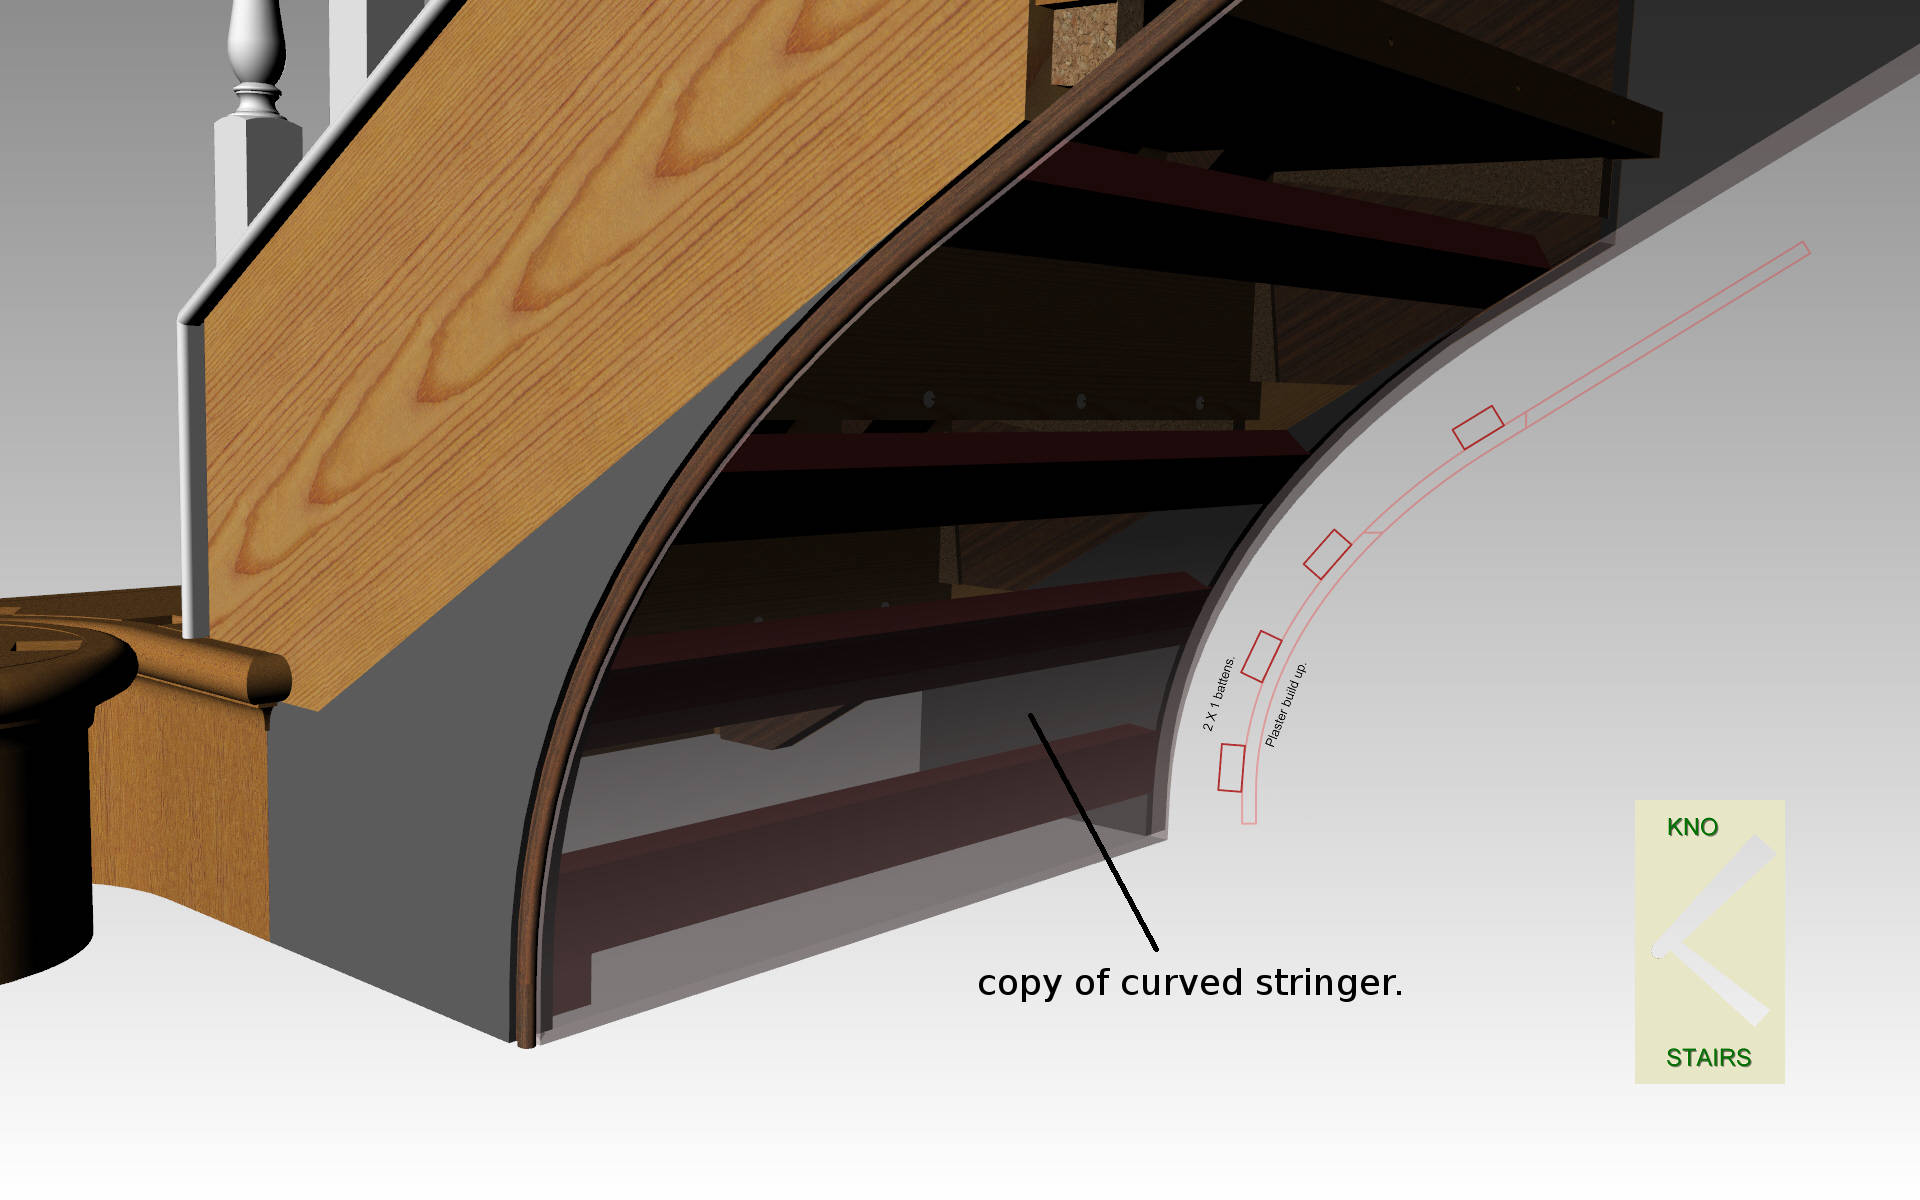 Soffit support curved stringer.